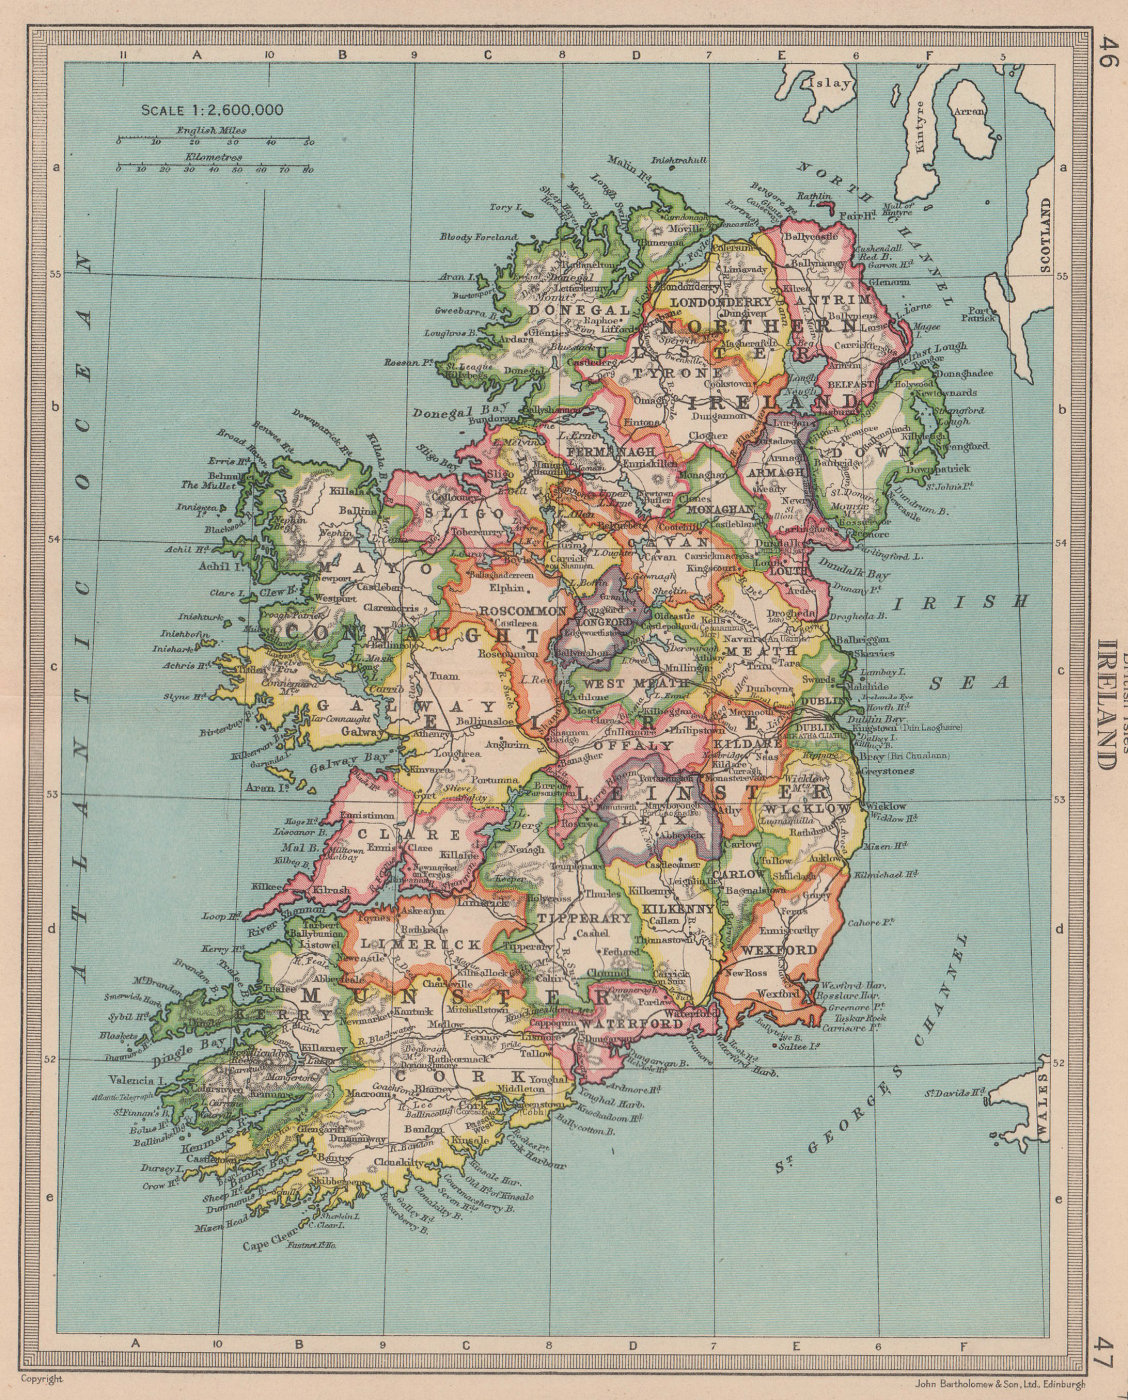 Ireland in provinces & counties. Antique map. BARTHOLOMEW 1949 old